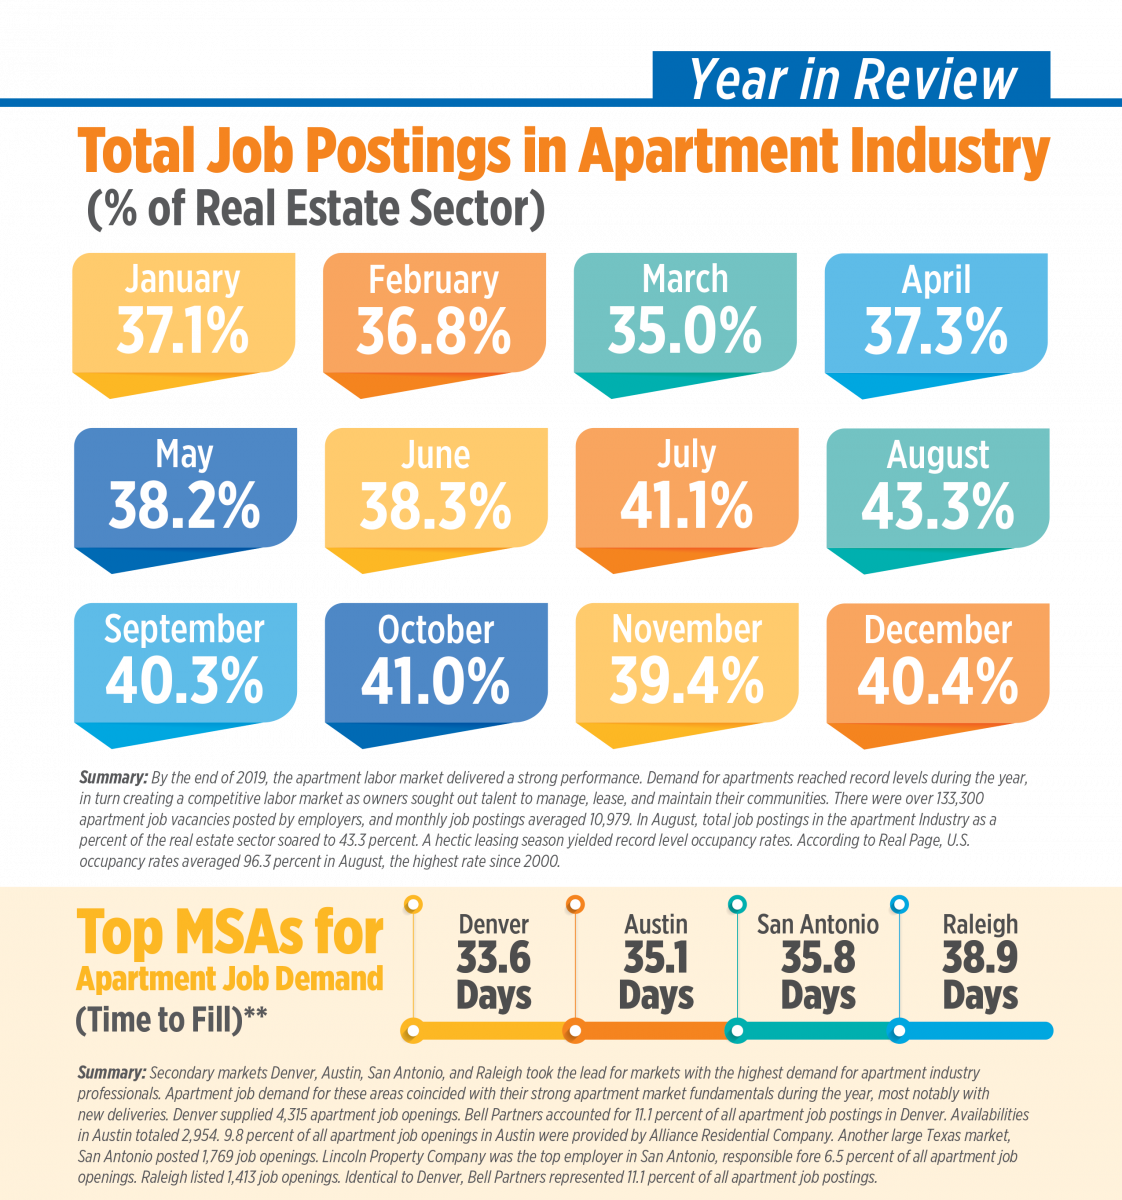 Total Job Postings in the Apartment Industry infographic. The highest point is in August, with 43.3%.